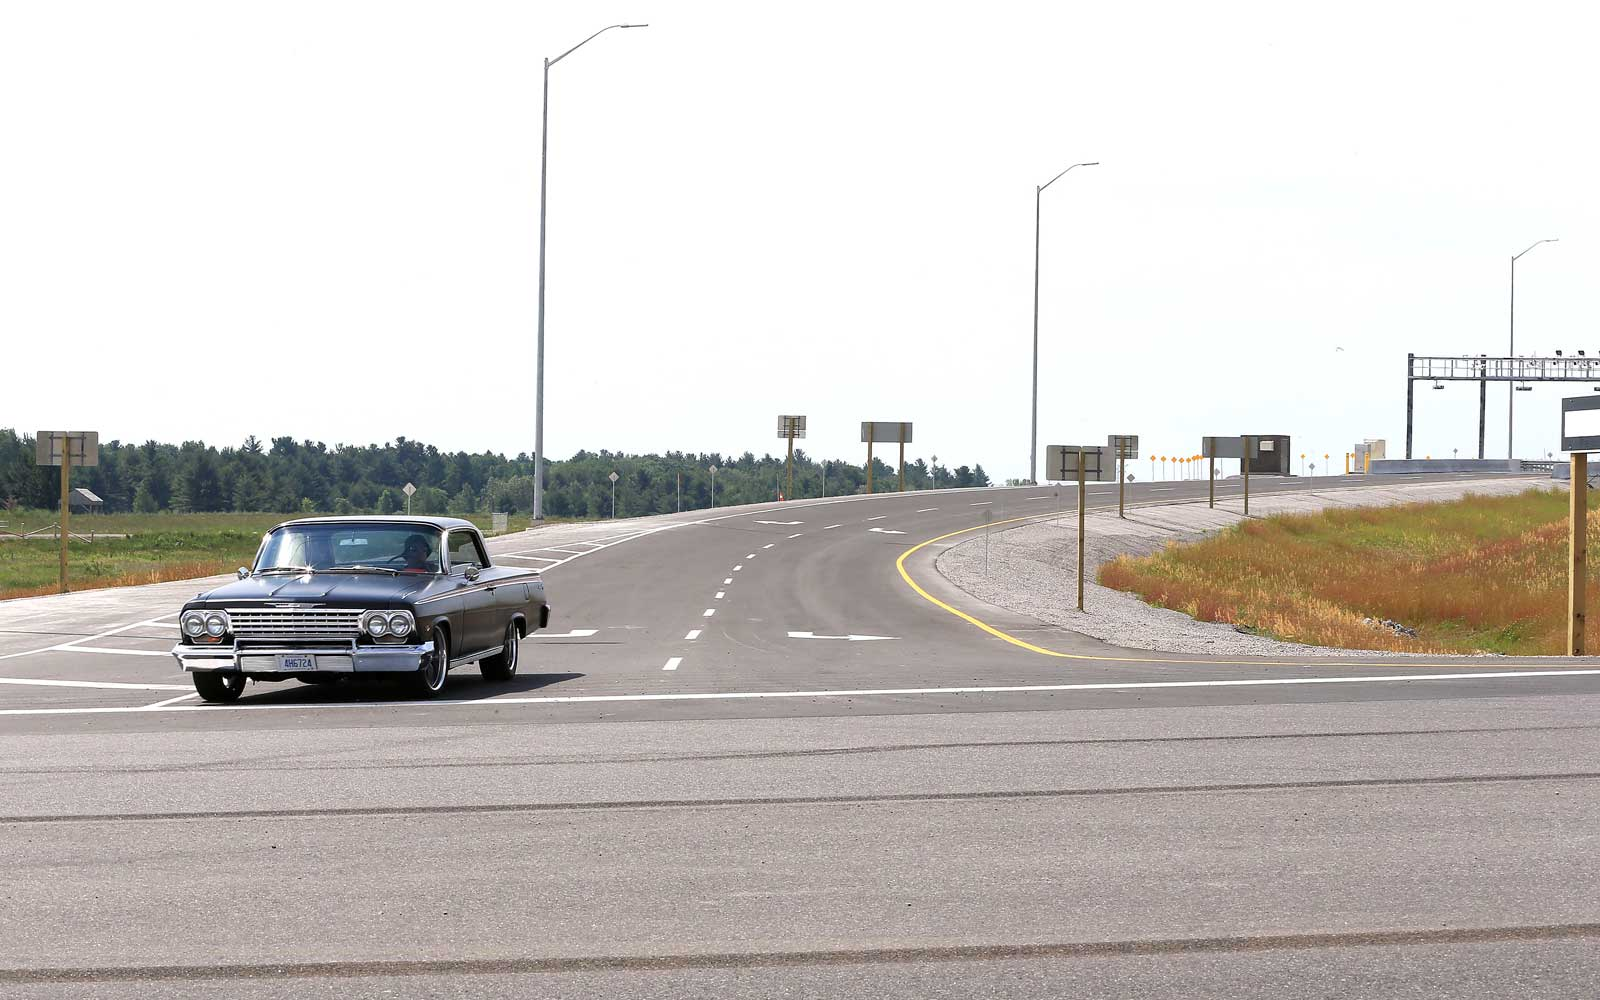 A vintage car comes off the ram at Lake Ridge off the 412 to Highway 7 east.